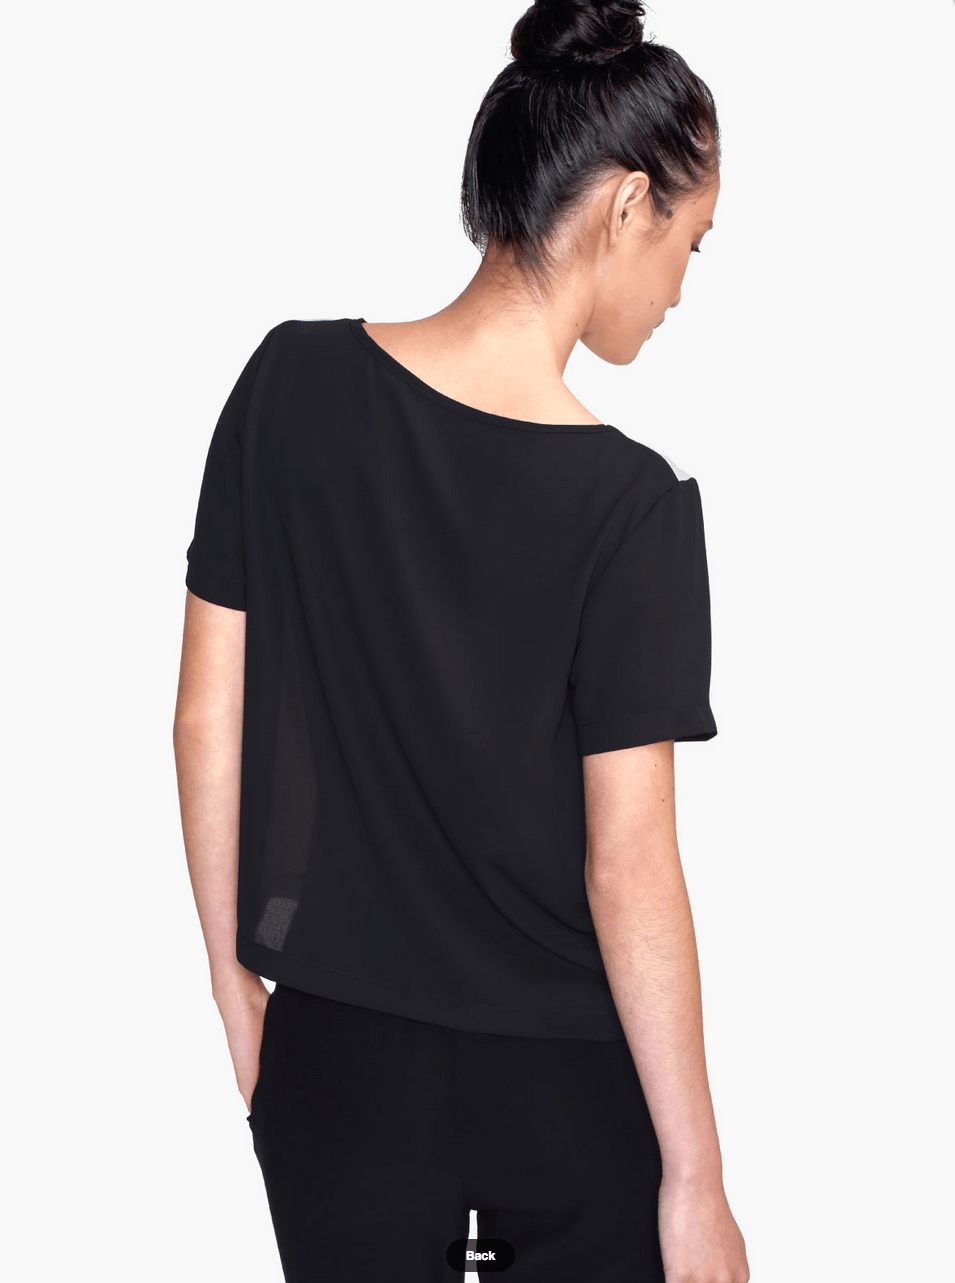 Lightnings Chiffon Top - Women Blouse - Modern Clothing-TheGretest